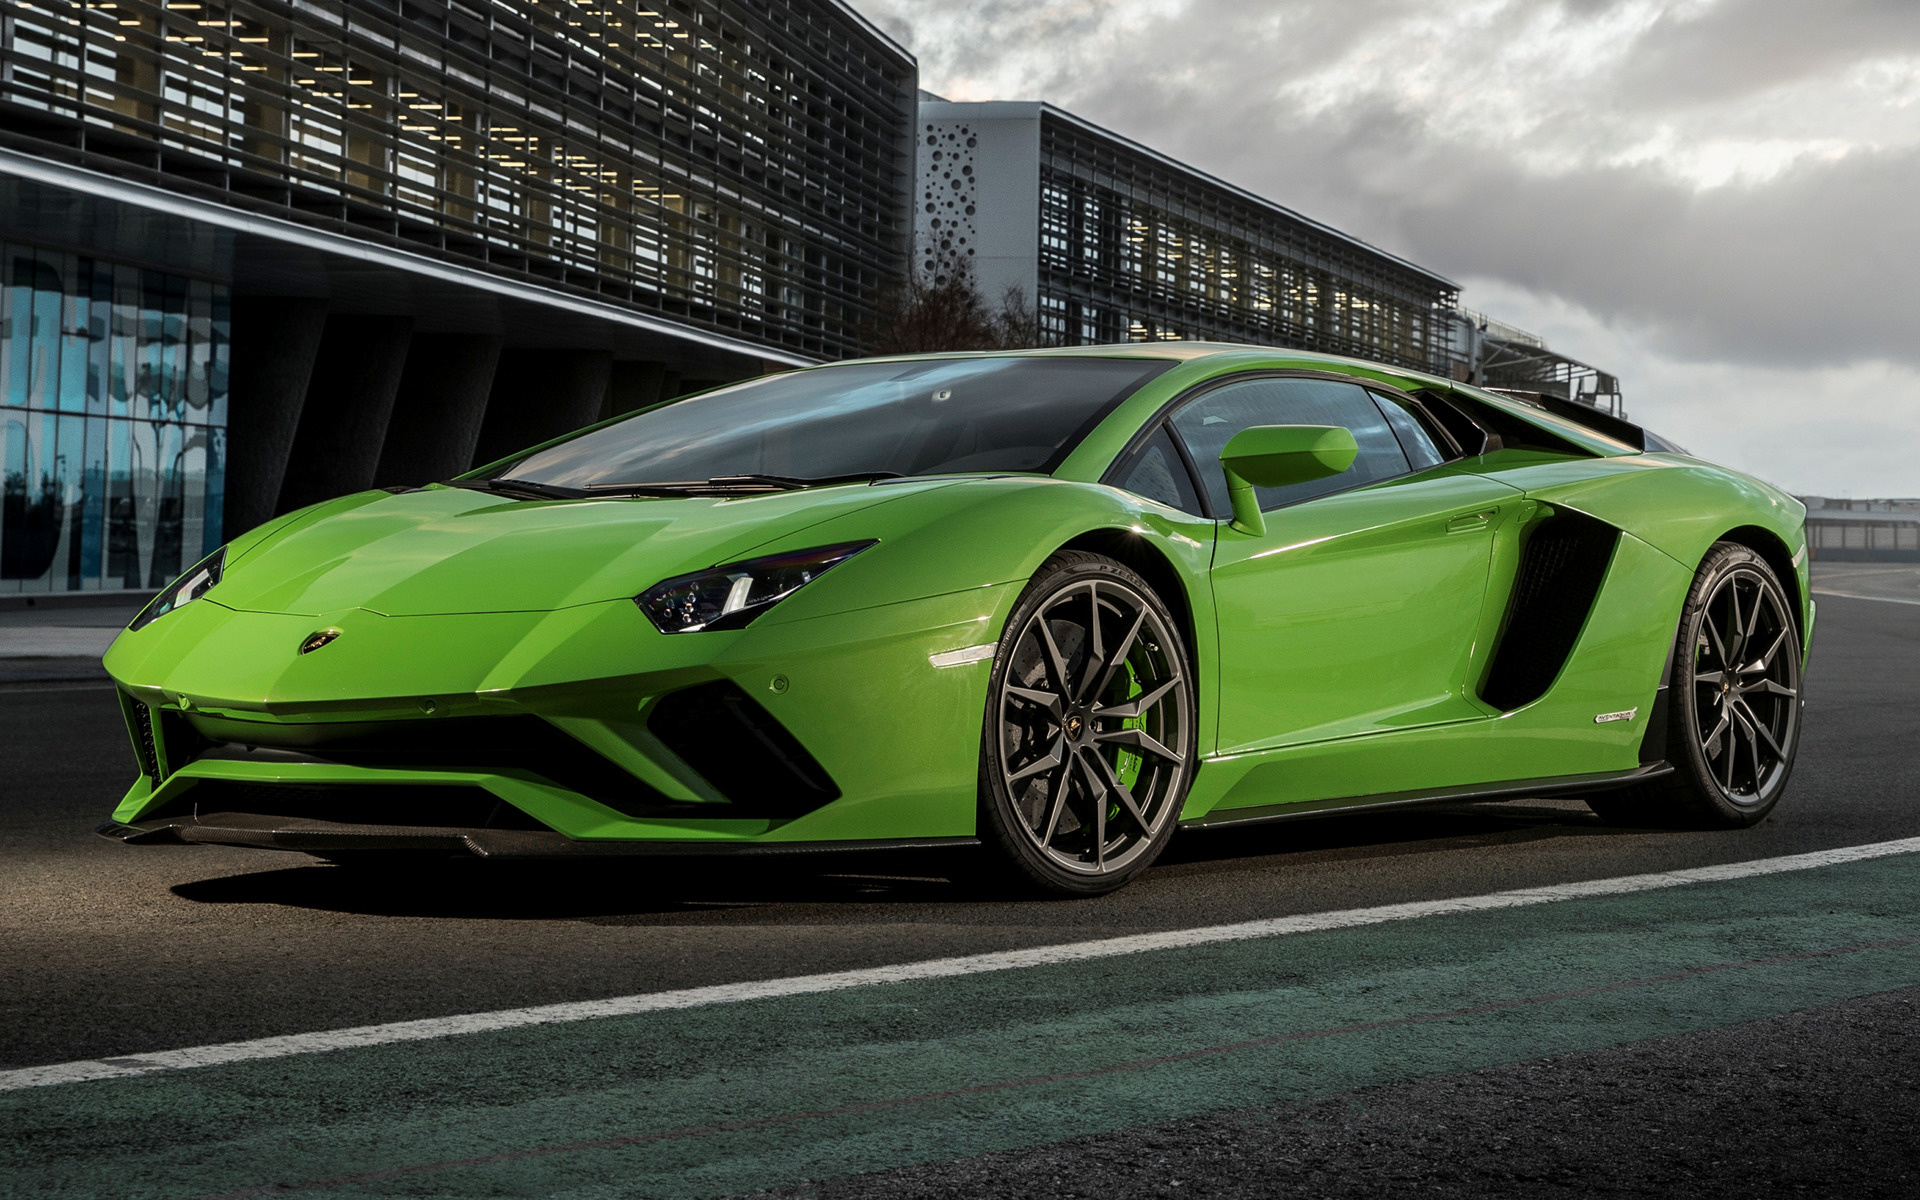 2017 Lamborghini Aventador S - Wallpapers and HD Images ...